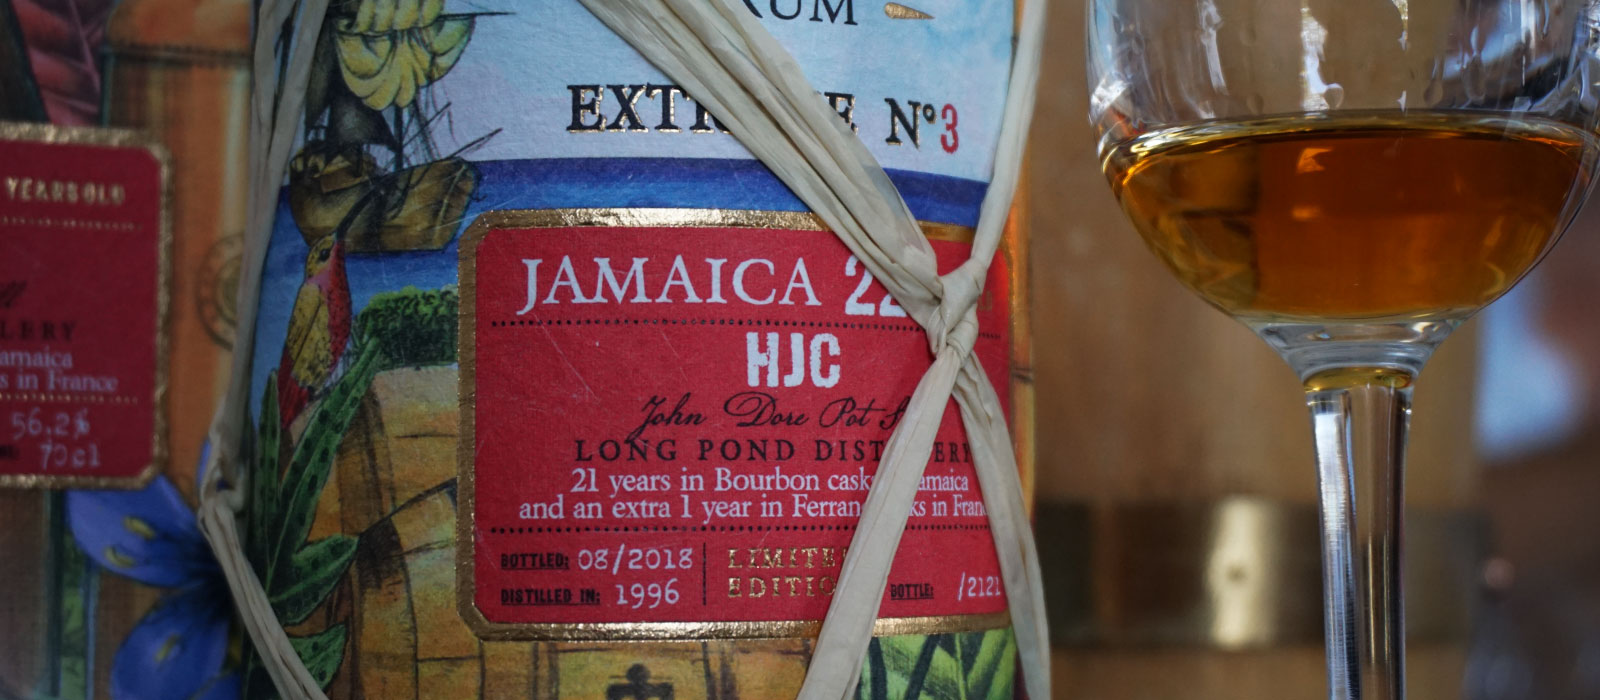 Månadens rom augusti 2019: Plantation Extrême no.3 Jamaica 22 Years HJC Long Pond 1996